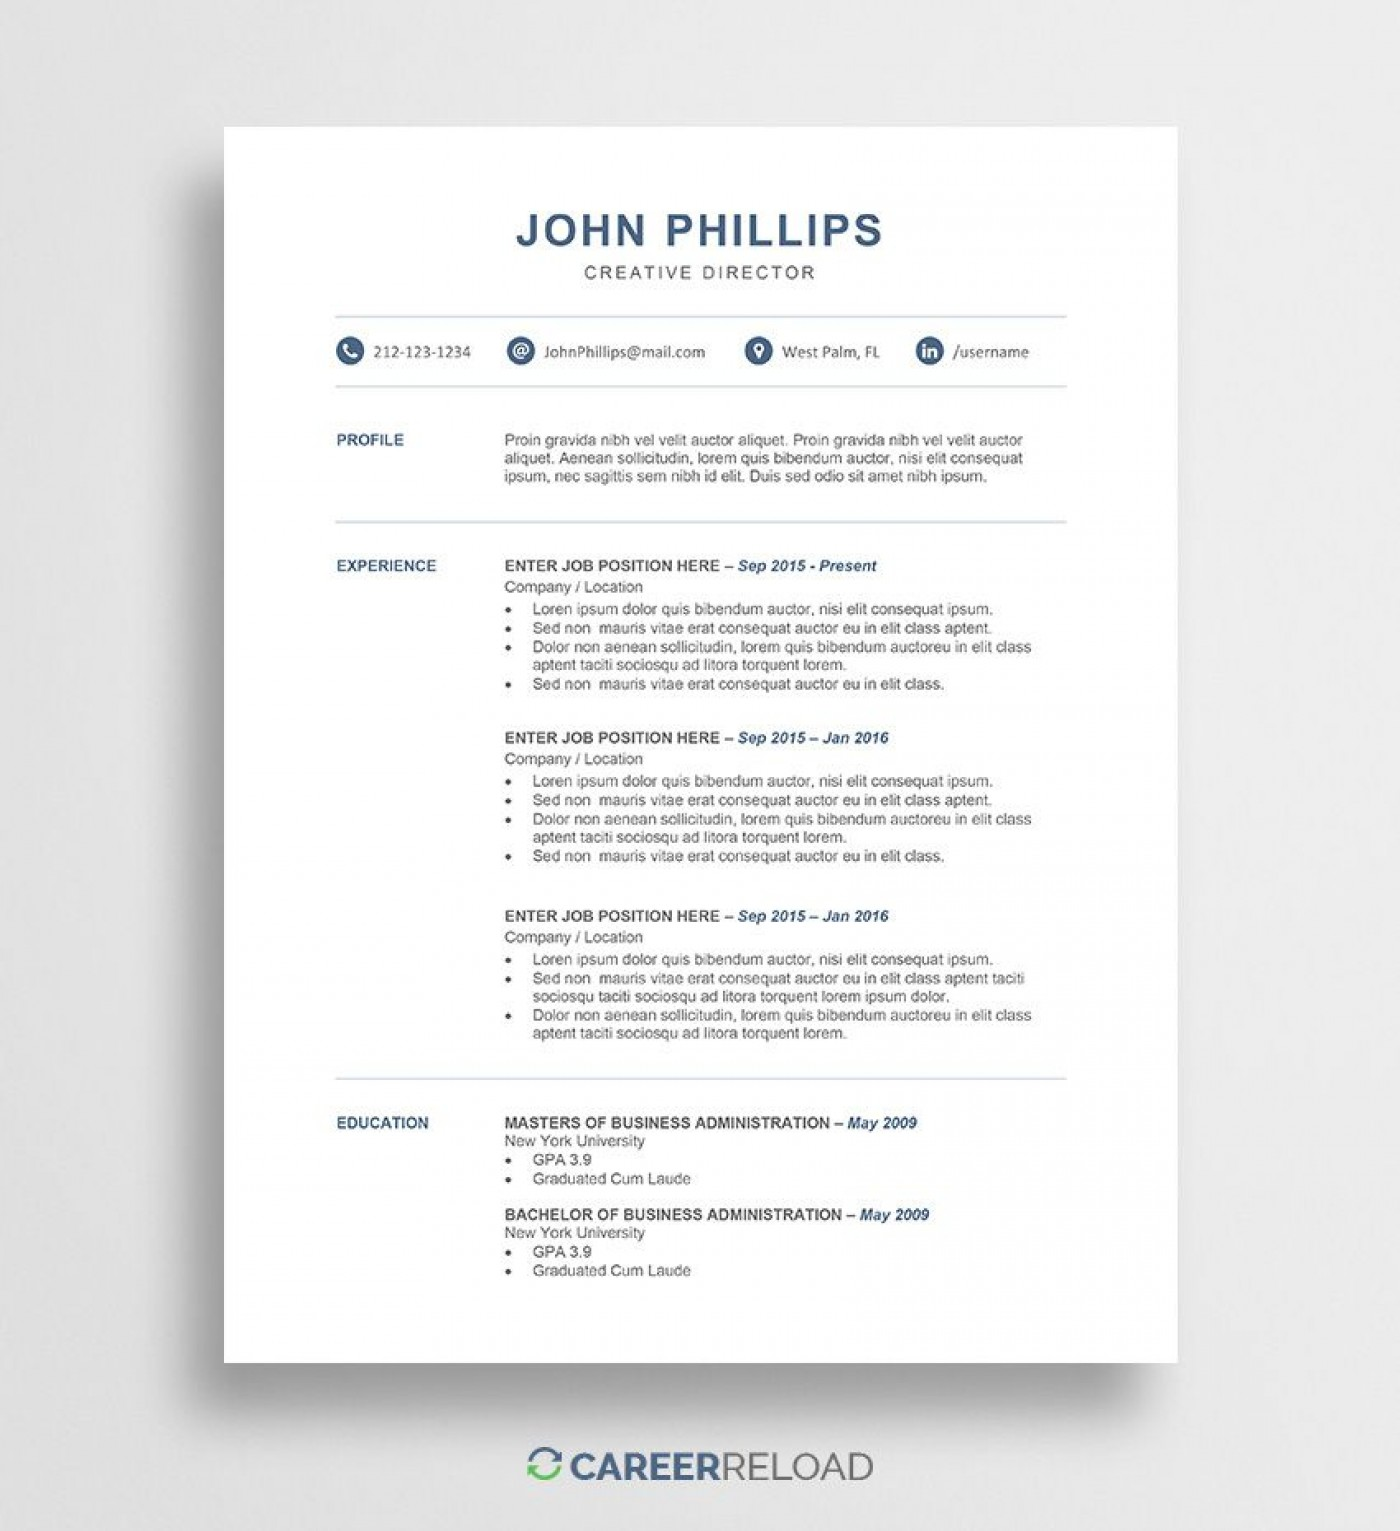 009 Awesome Resume Template M Word Free High Def  Modern Microsoft Download 2010 Cv With Picture1400